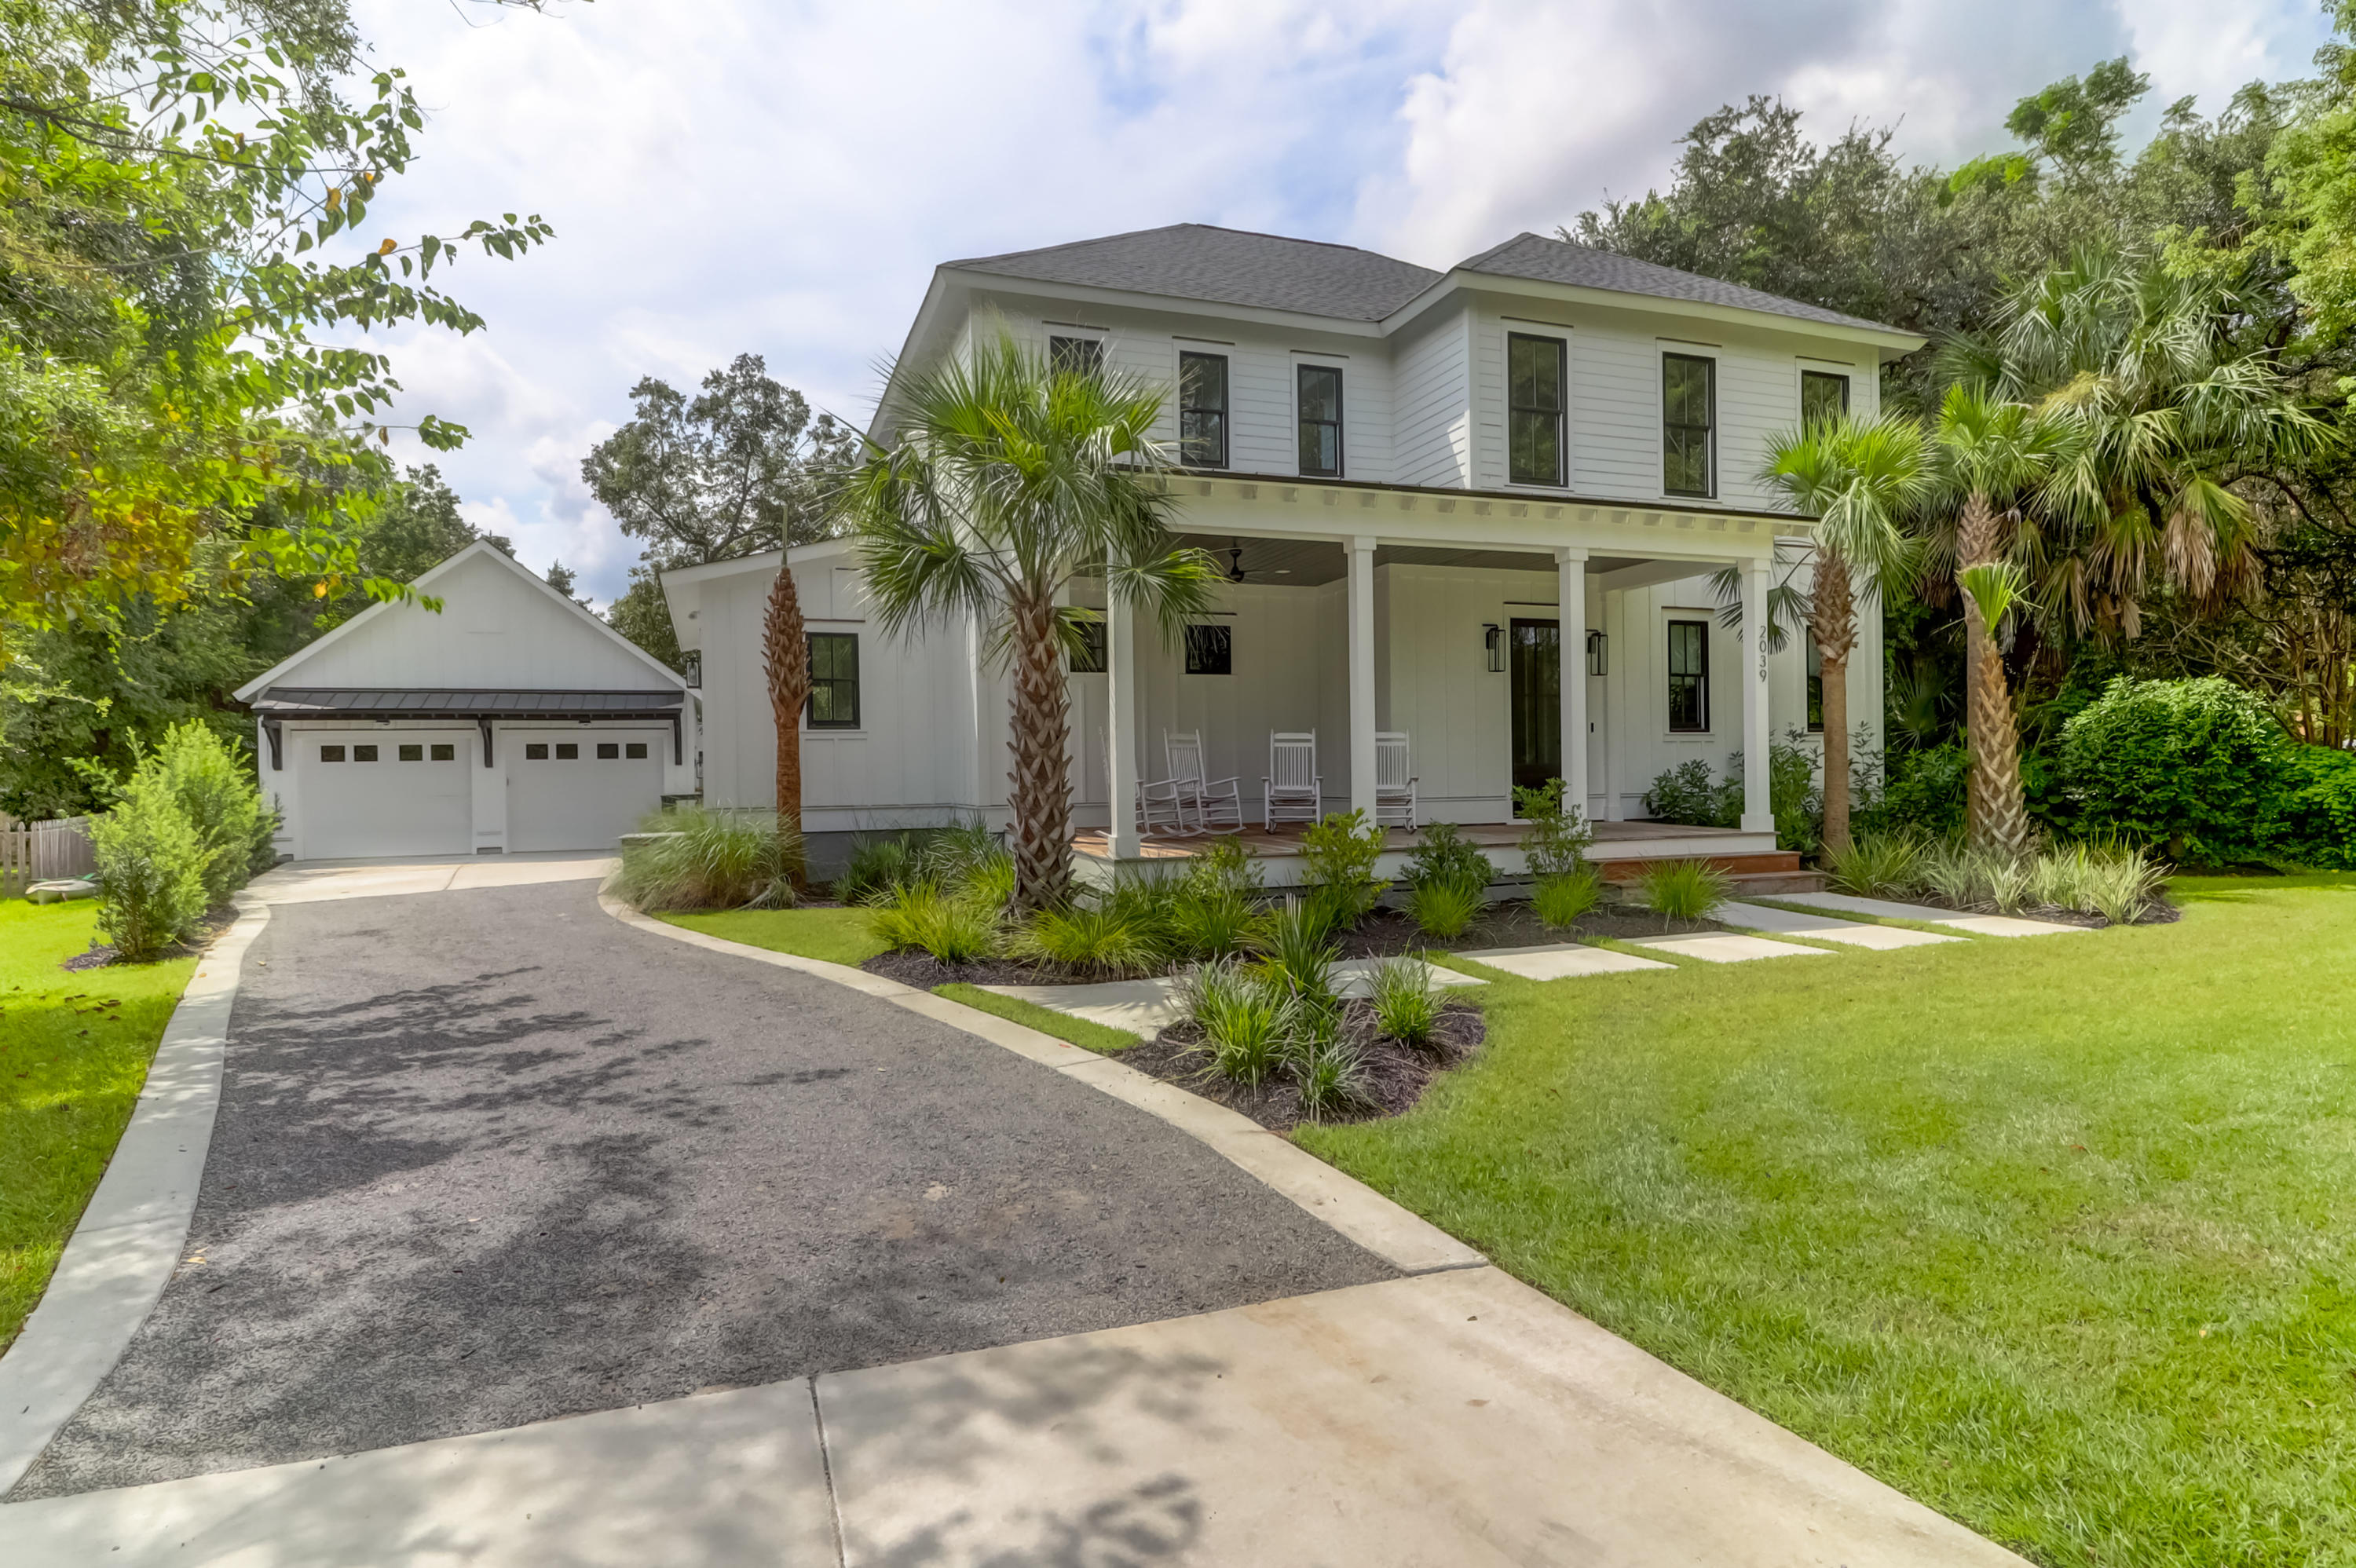 Riverland Terrace Homes For Sale - 2039 Parkway Dr, Charleston, SC - 15